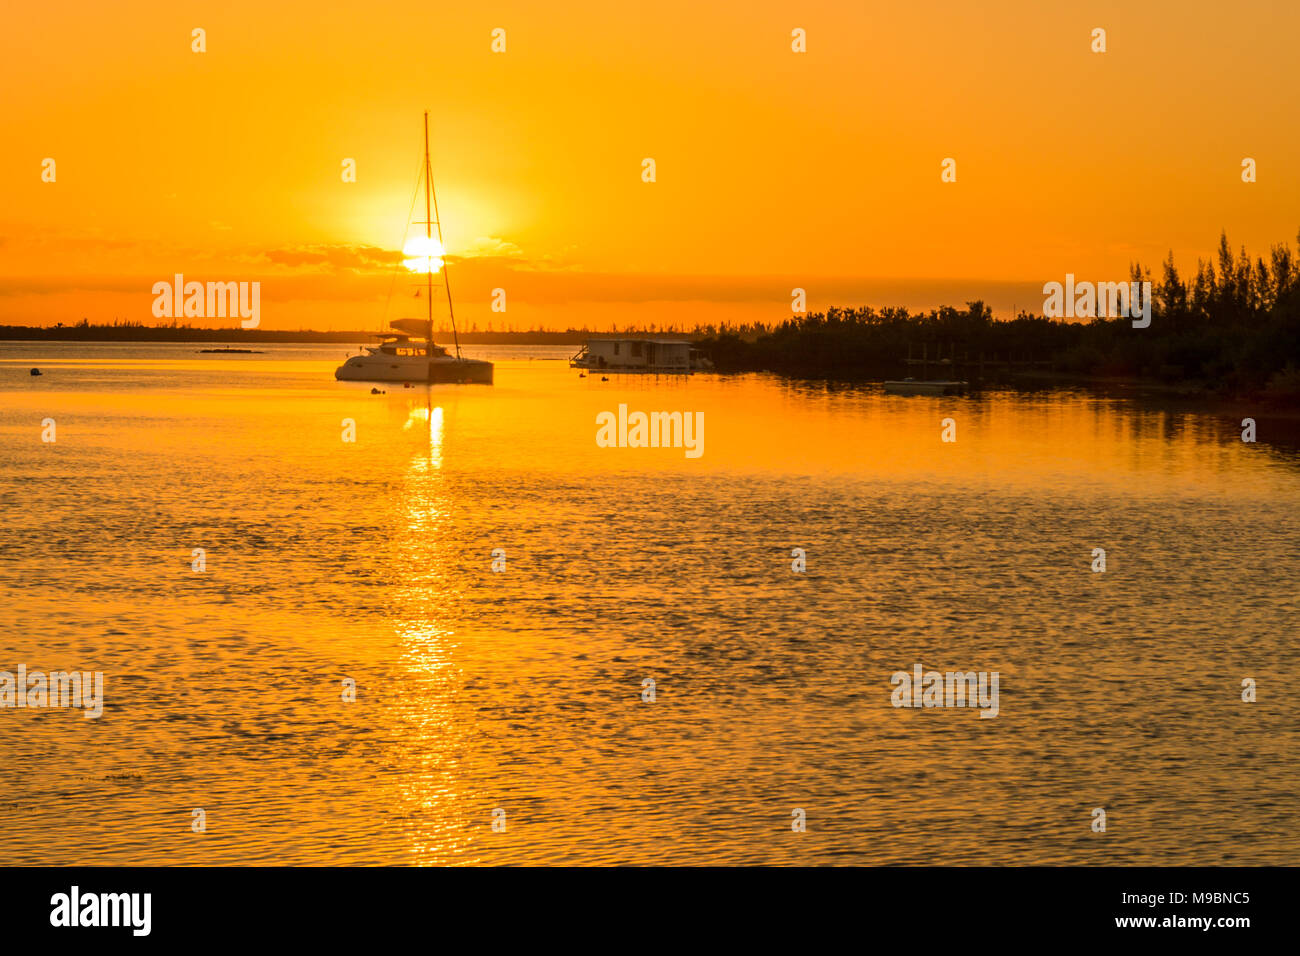 Bahamian Sunrise over gorgeous ocean showing catamaran sailboat and coastal line - Stock Image